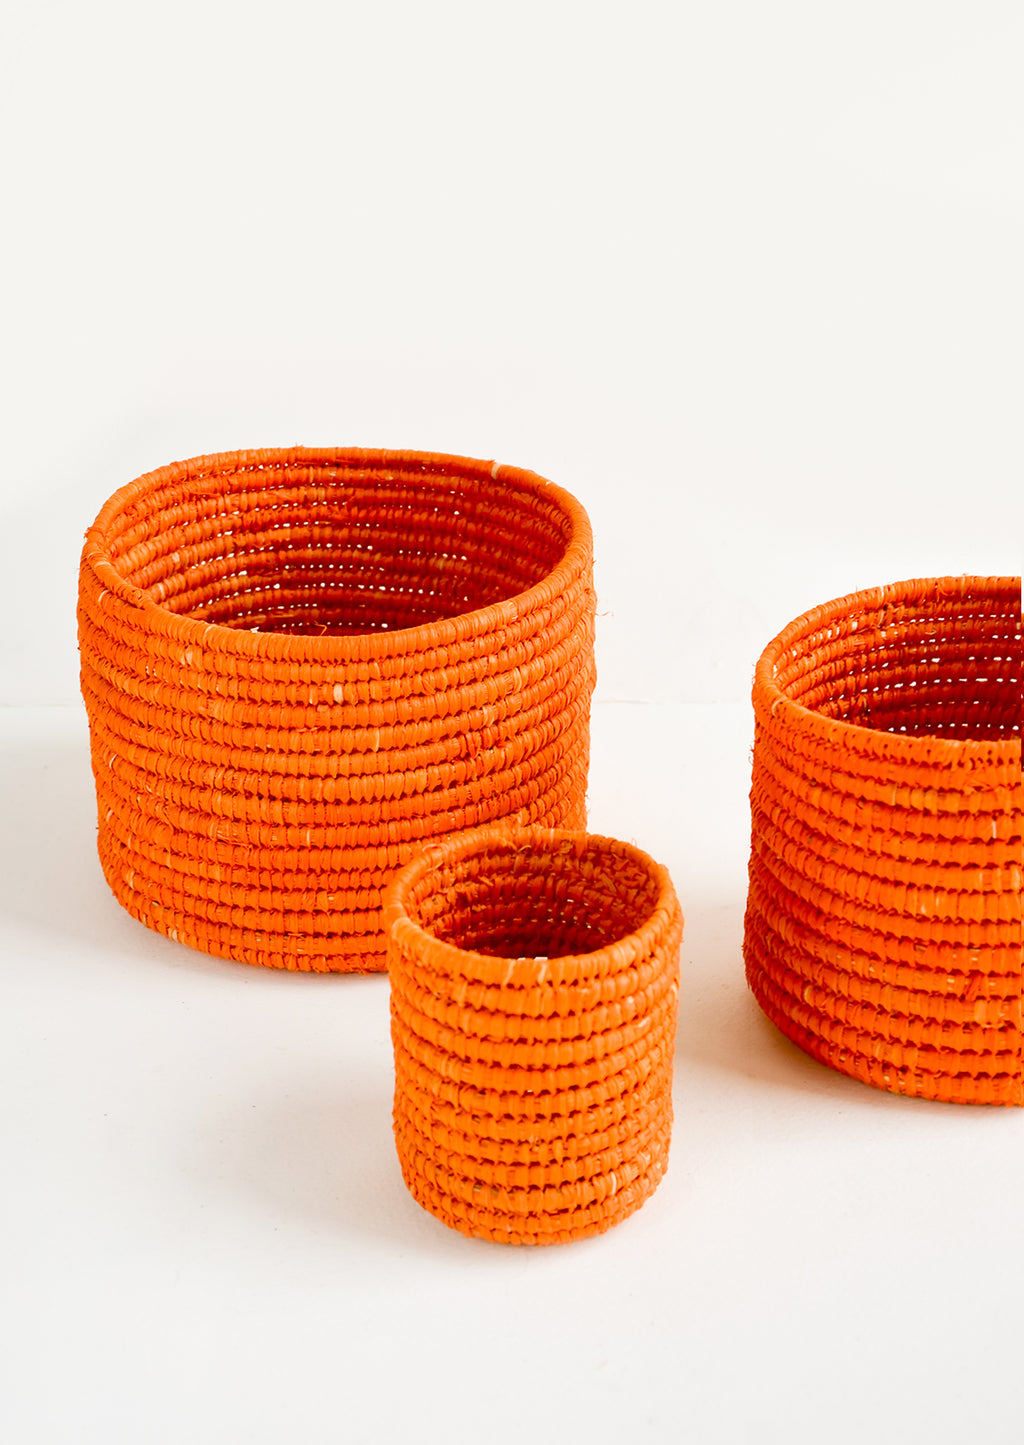 Extra Small / Orange: Set of round catchall baskets made from orange raffia in three incremental sizes.